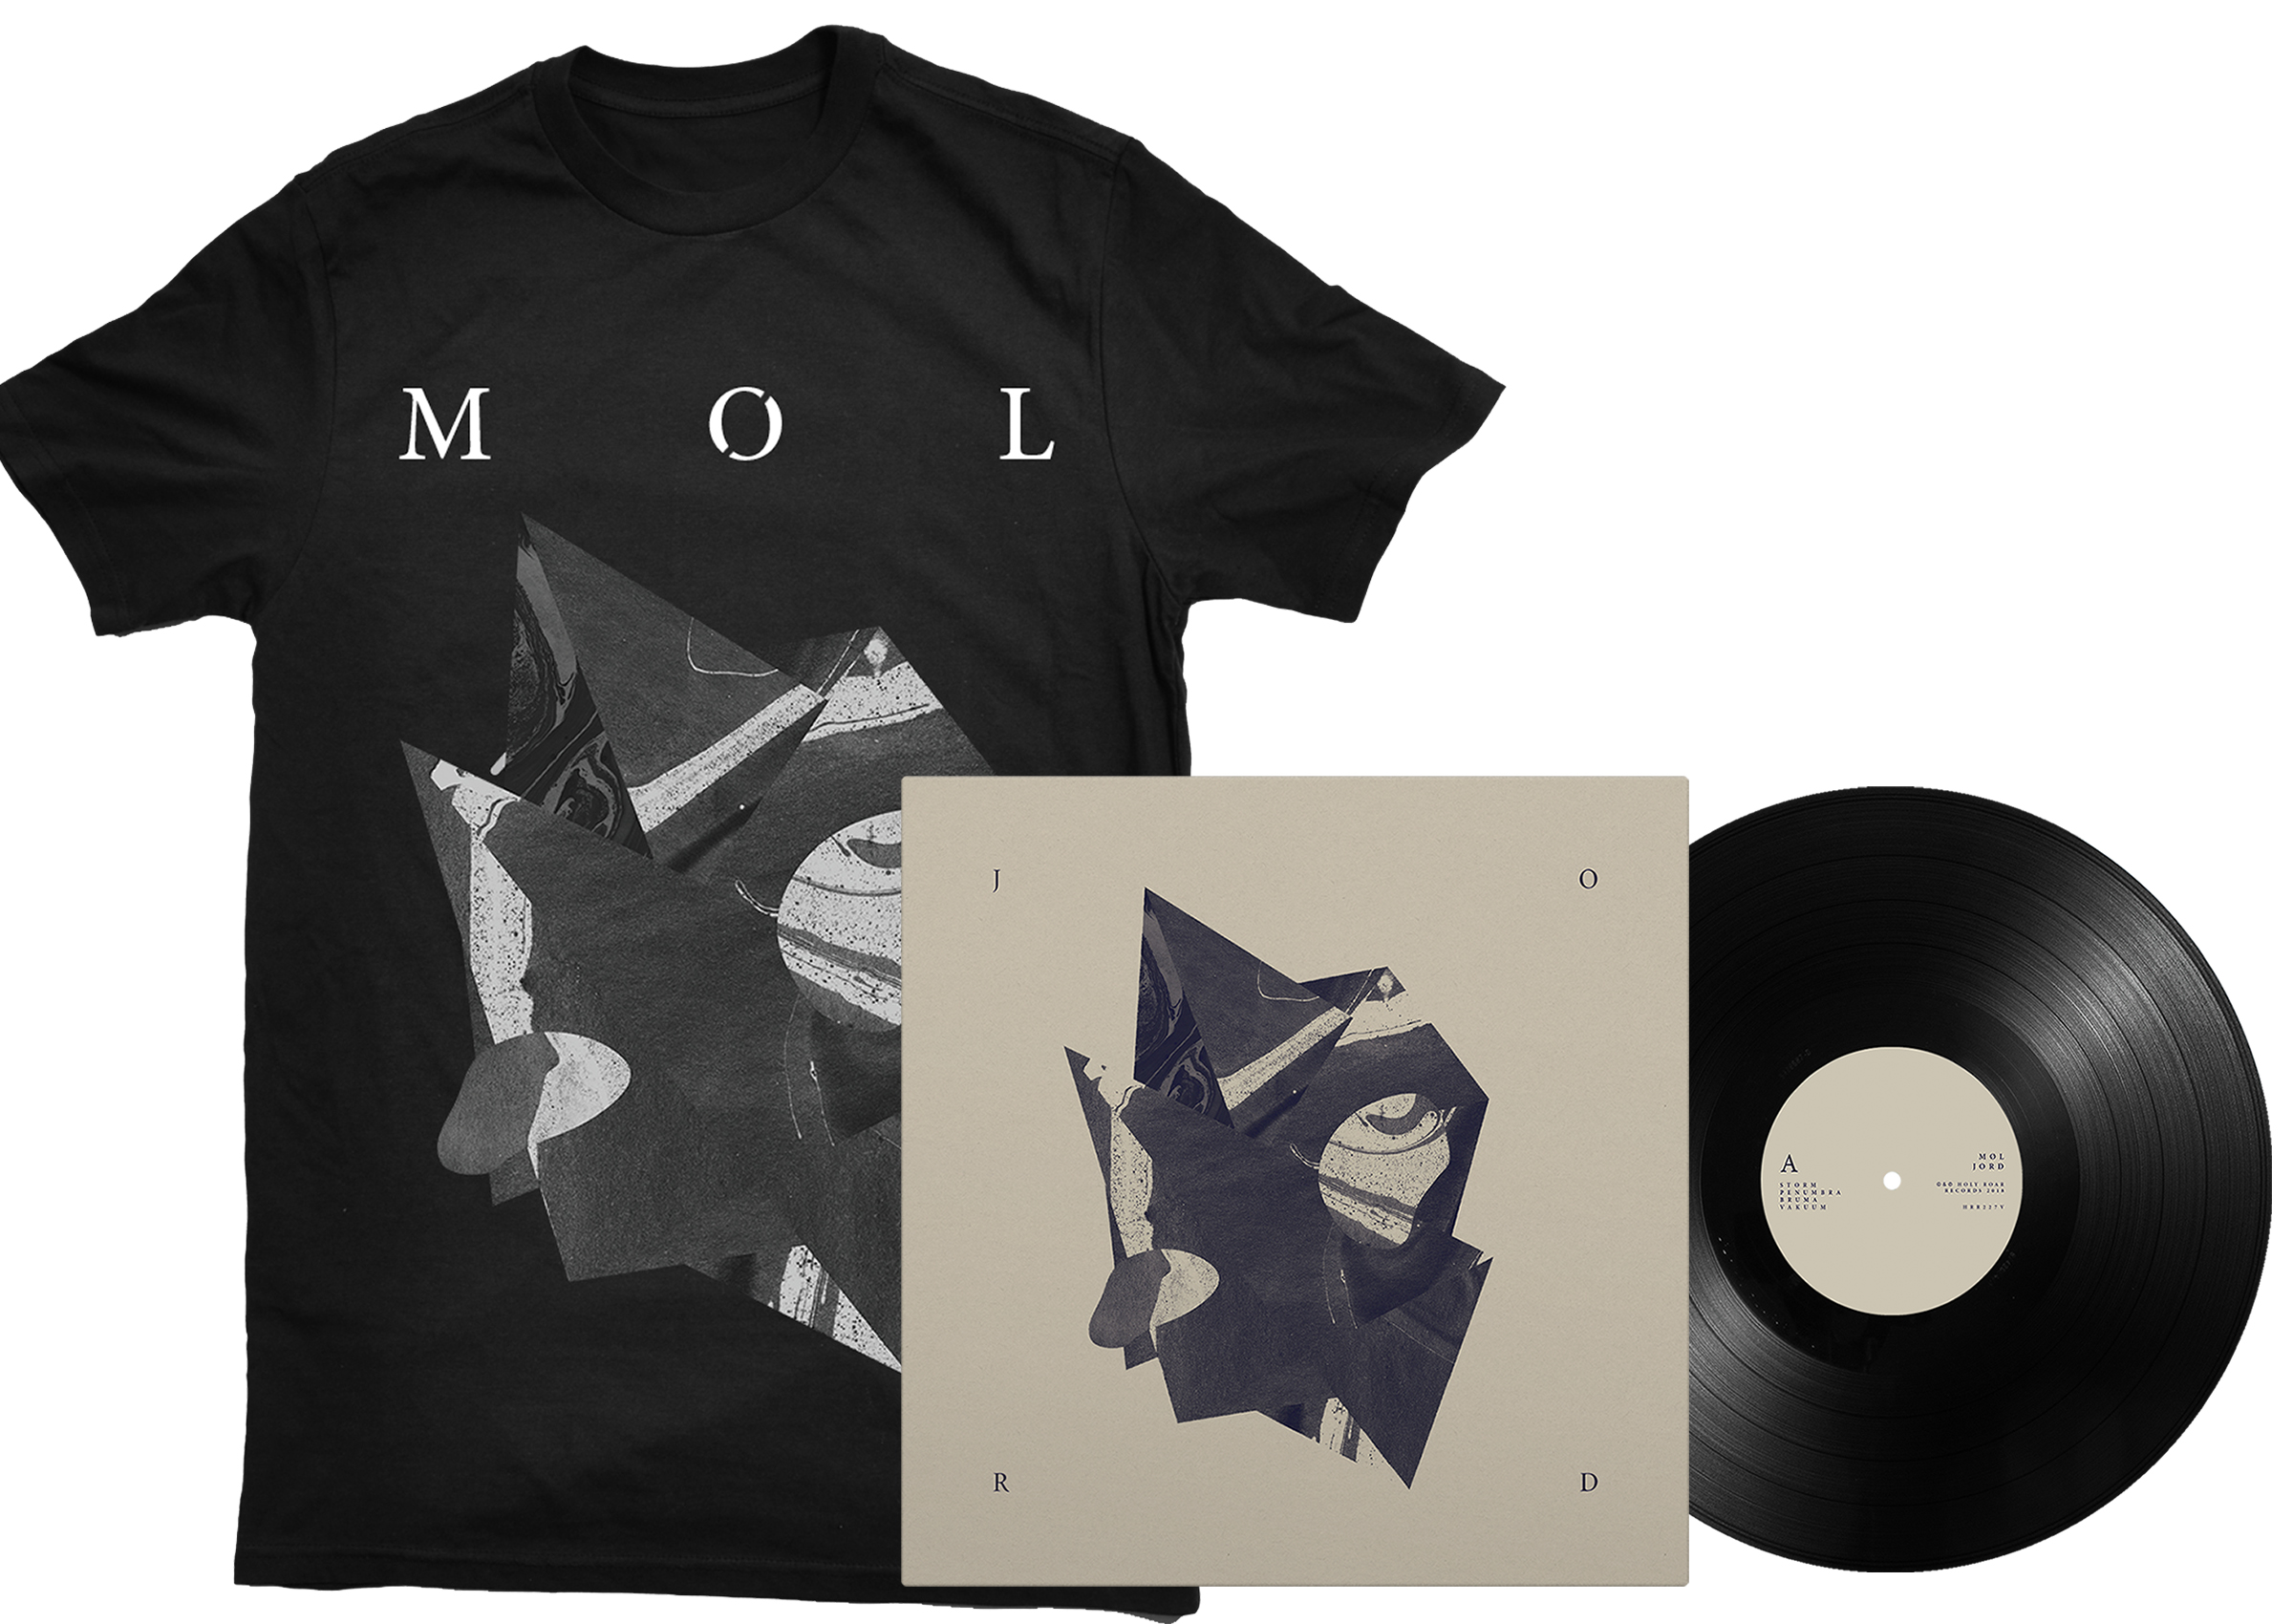 MØL - JORD shirt + LP